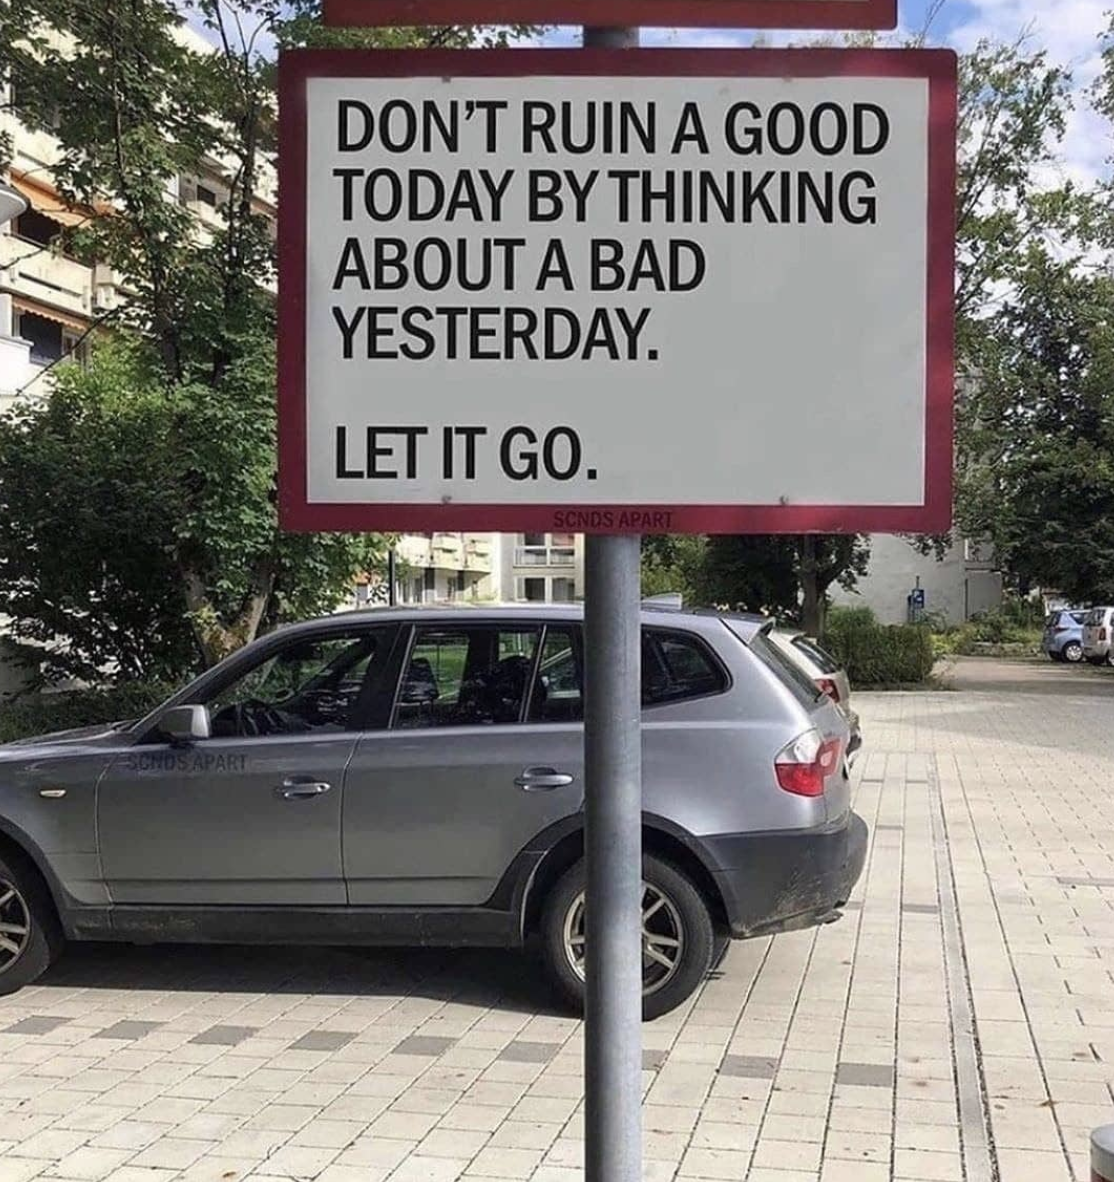 [Image] Don't ruin a good today by thinking about a bad yesterday. Let it go.